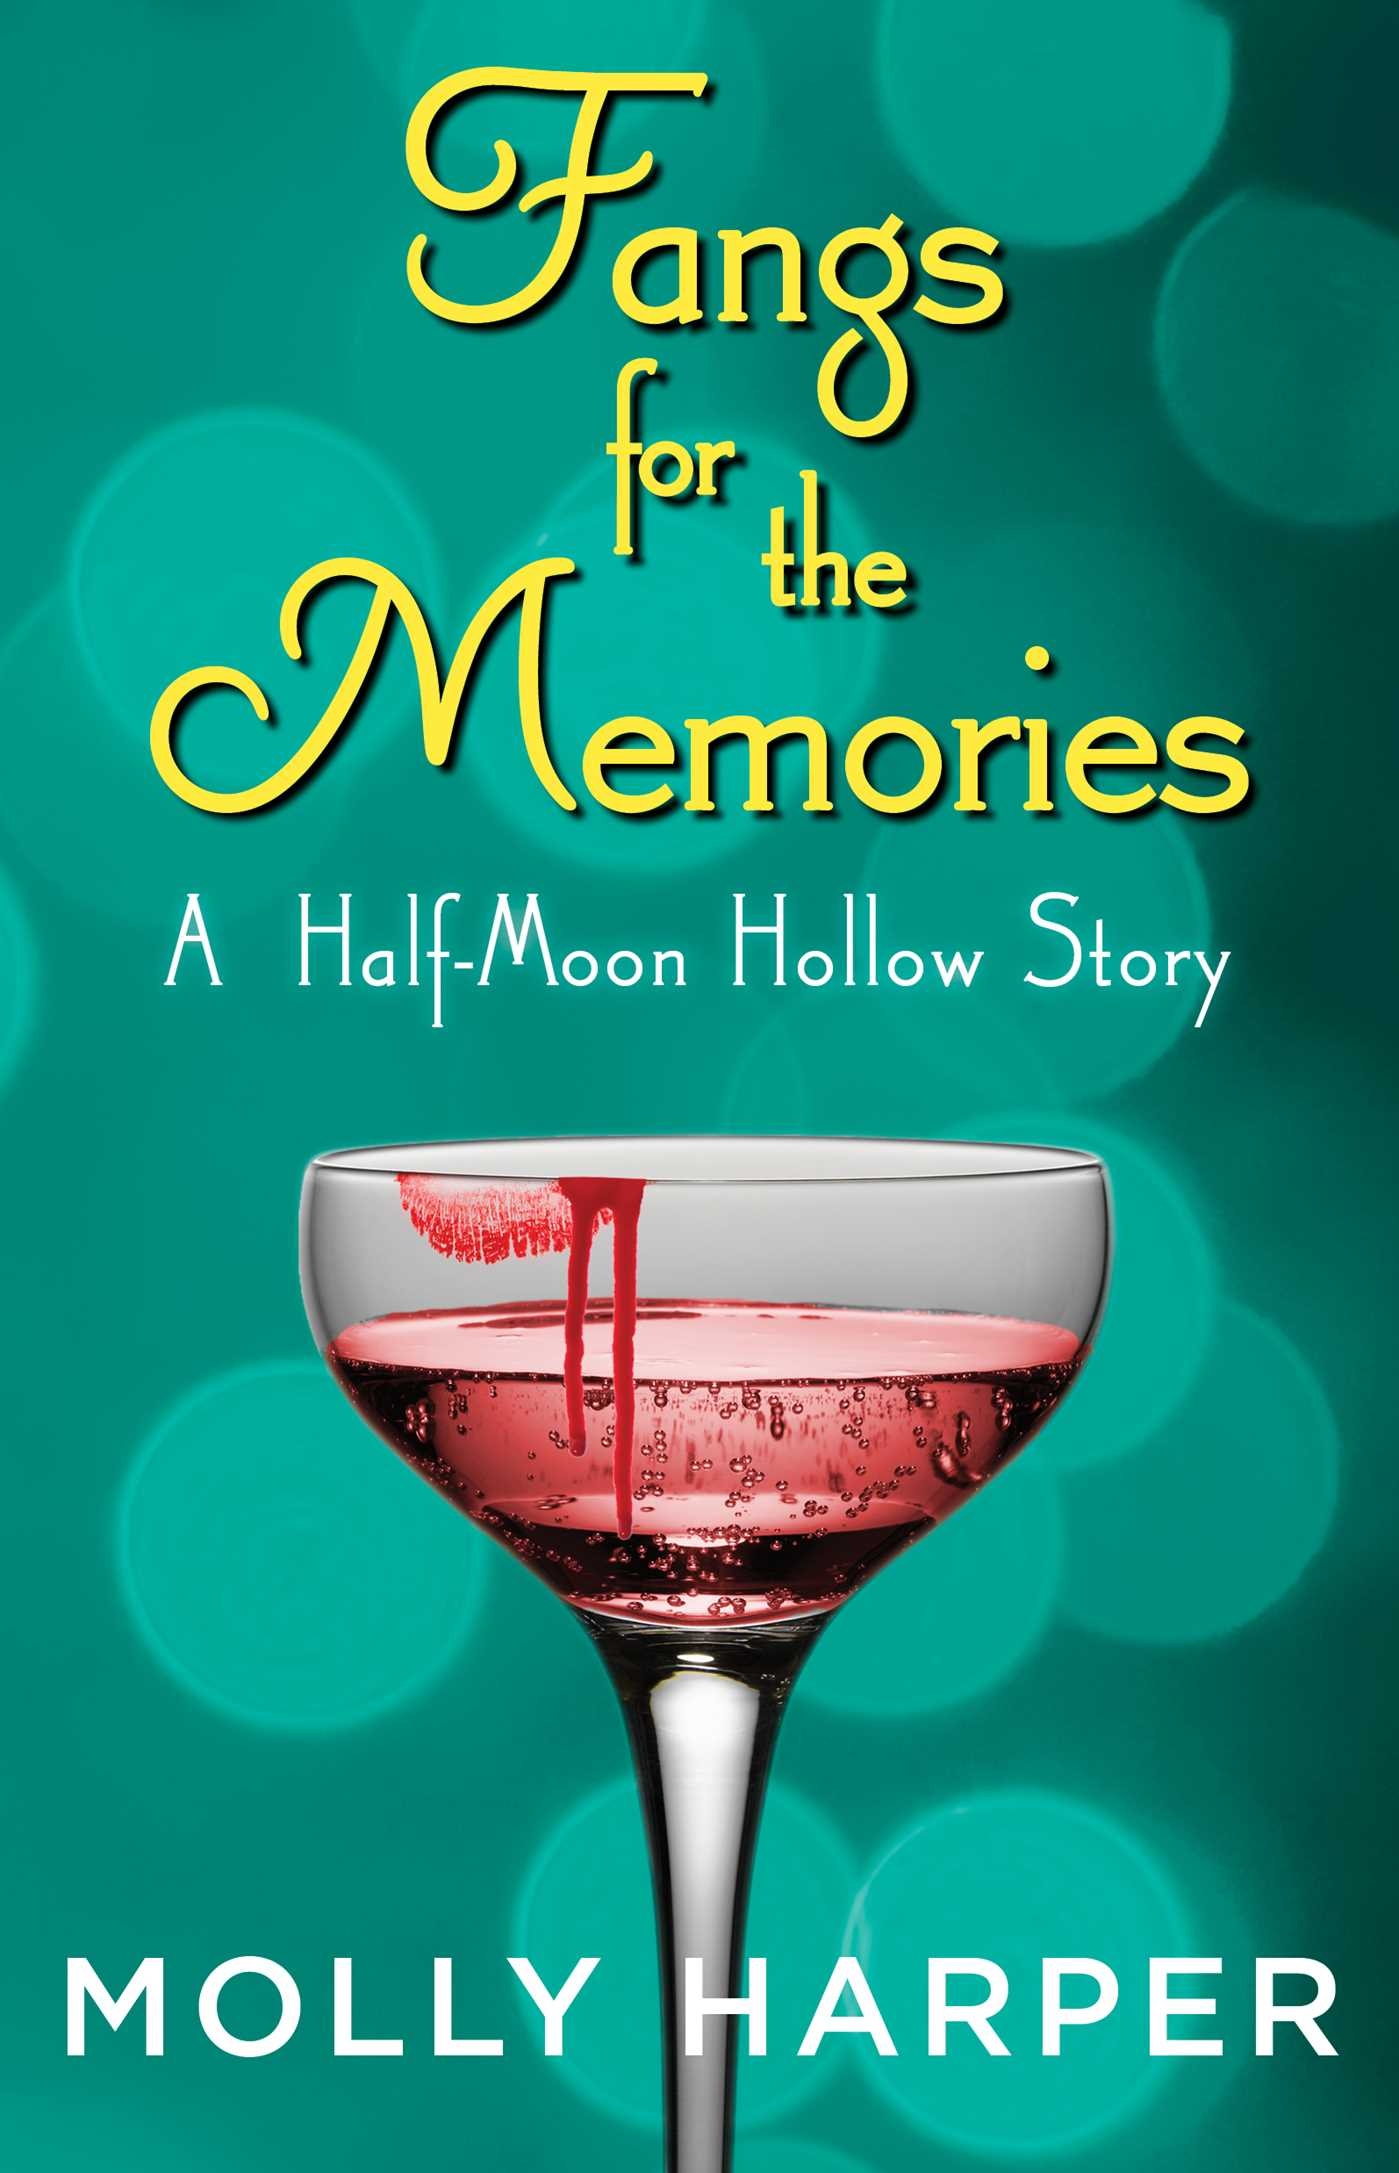 Half-Moon Hollow 4.5 - Fangs for the Memories - Molly Harper